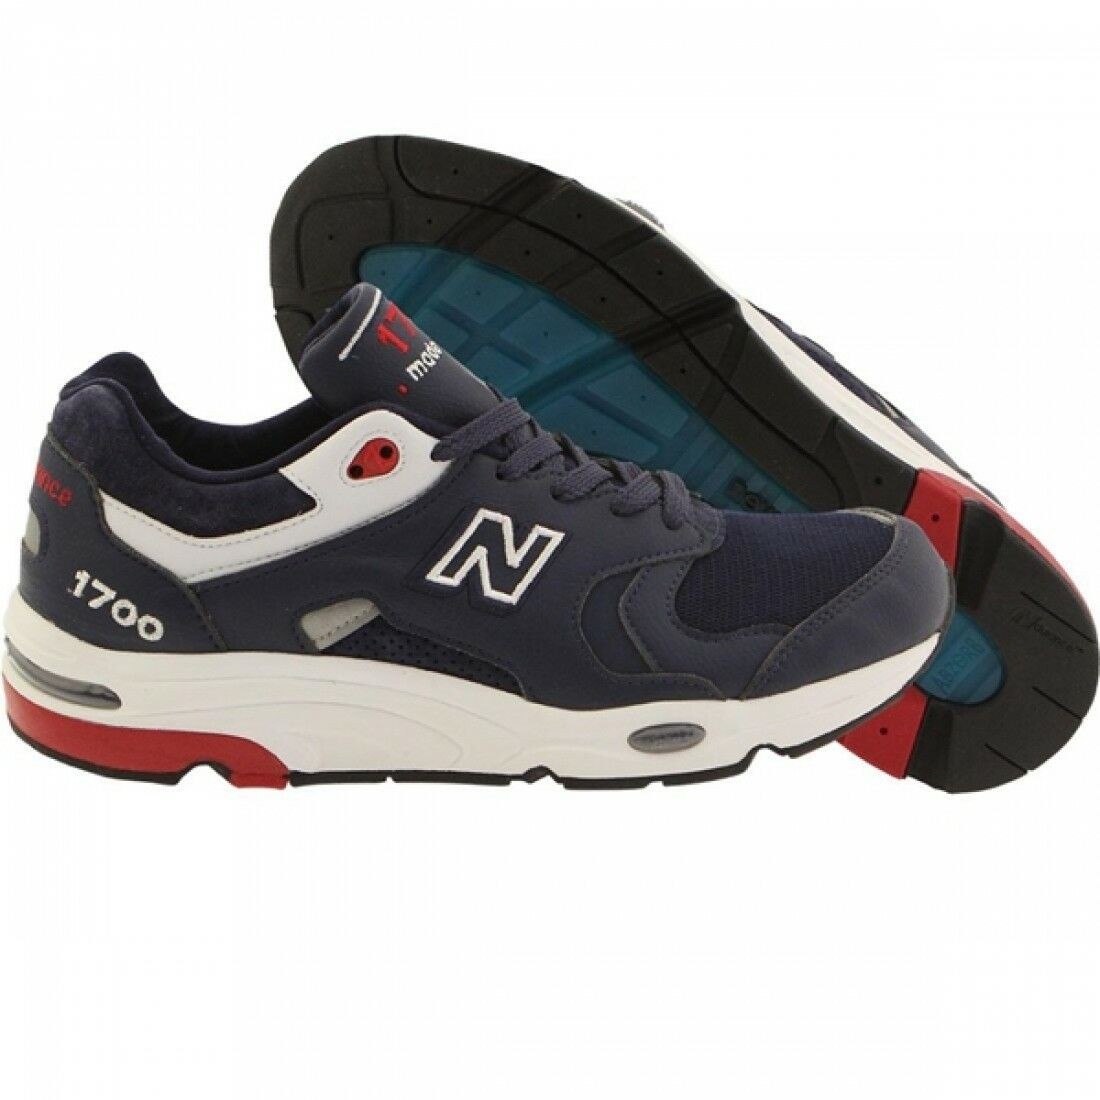 New Balance Classics 1700 Men's Size 10.5 shoes USA Navy White Red M1700CME NEW